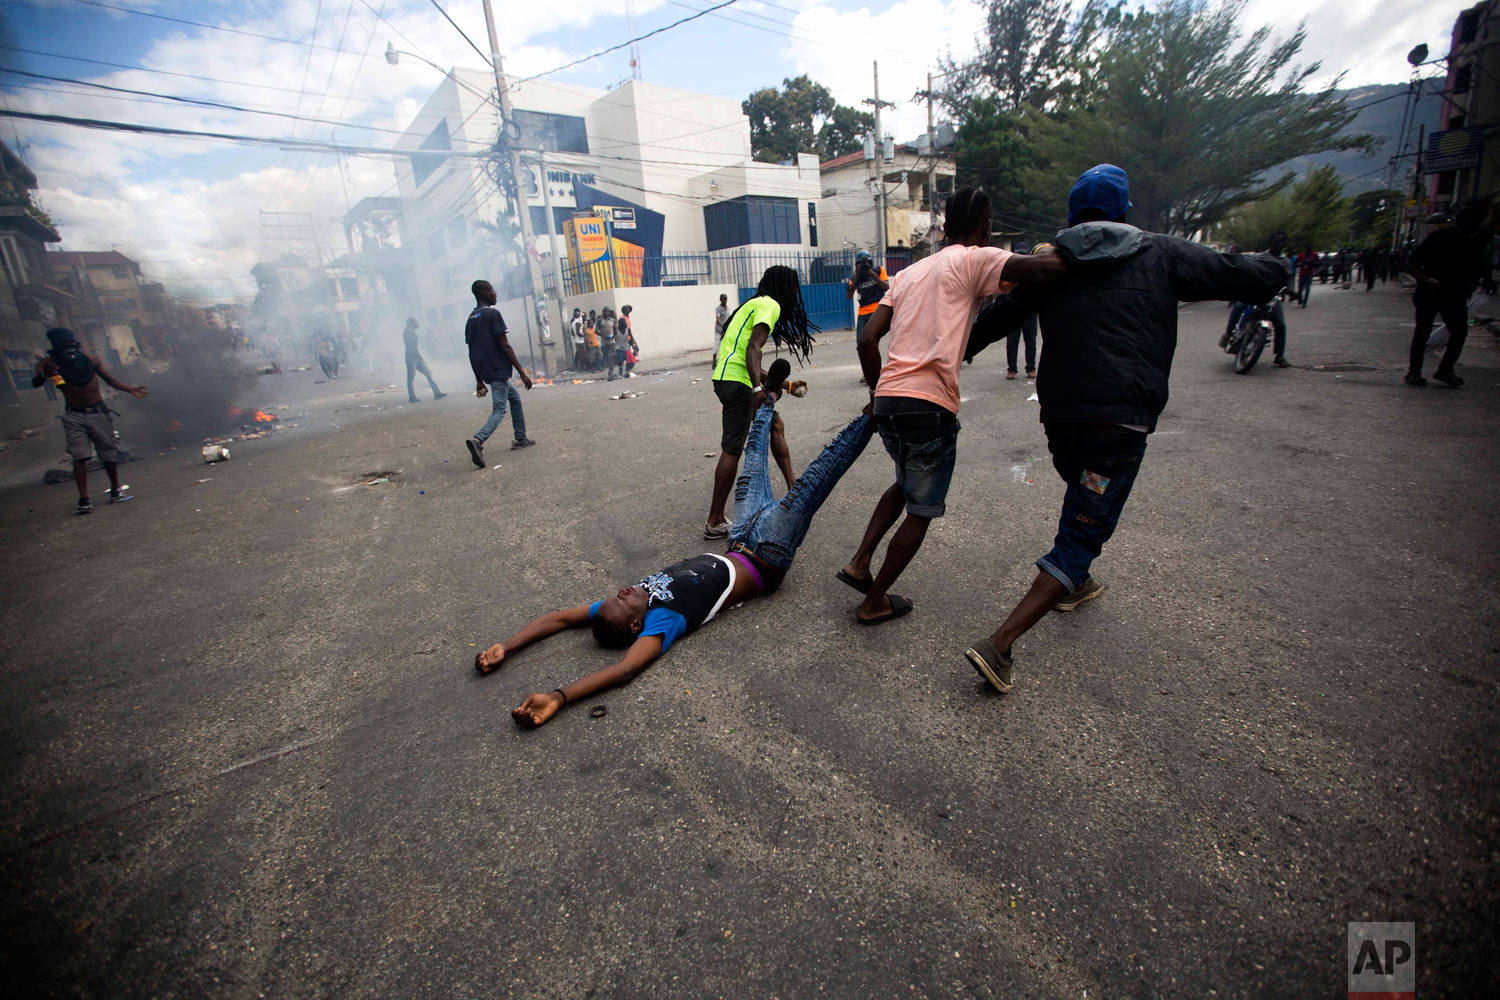 Demonstrators drag the body of an unidentified protester toward police, as a form of protest after police shot into the crowd killing the unidentified protester, during a demonstration demanding the resignation of Haitian President Jovenel Moise near the presidential palace in Port-au-Prince, Haiti, Feb. 12, 2019. (AP Photo/Dieu Nalio Chery)